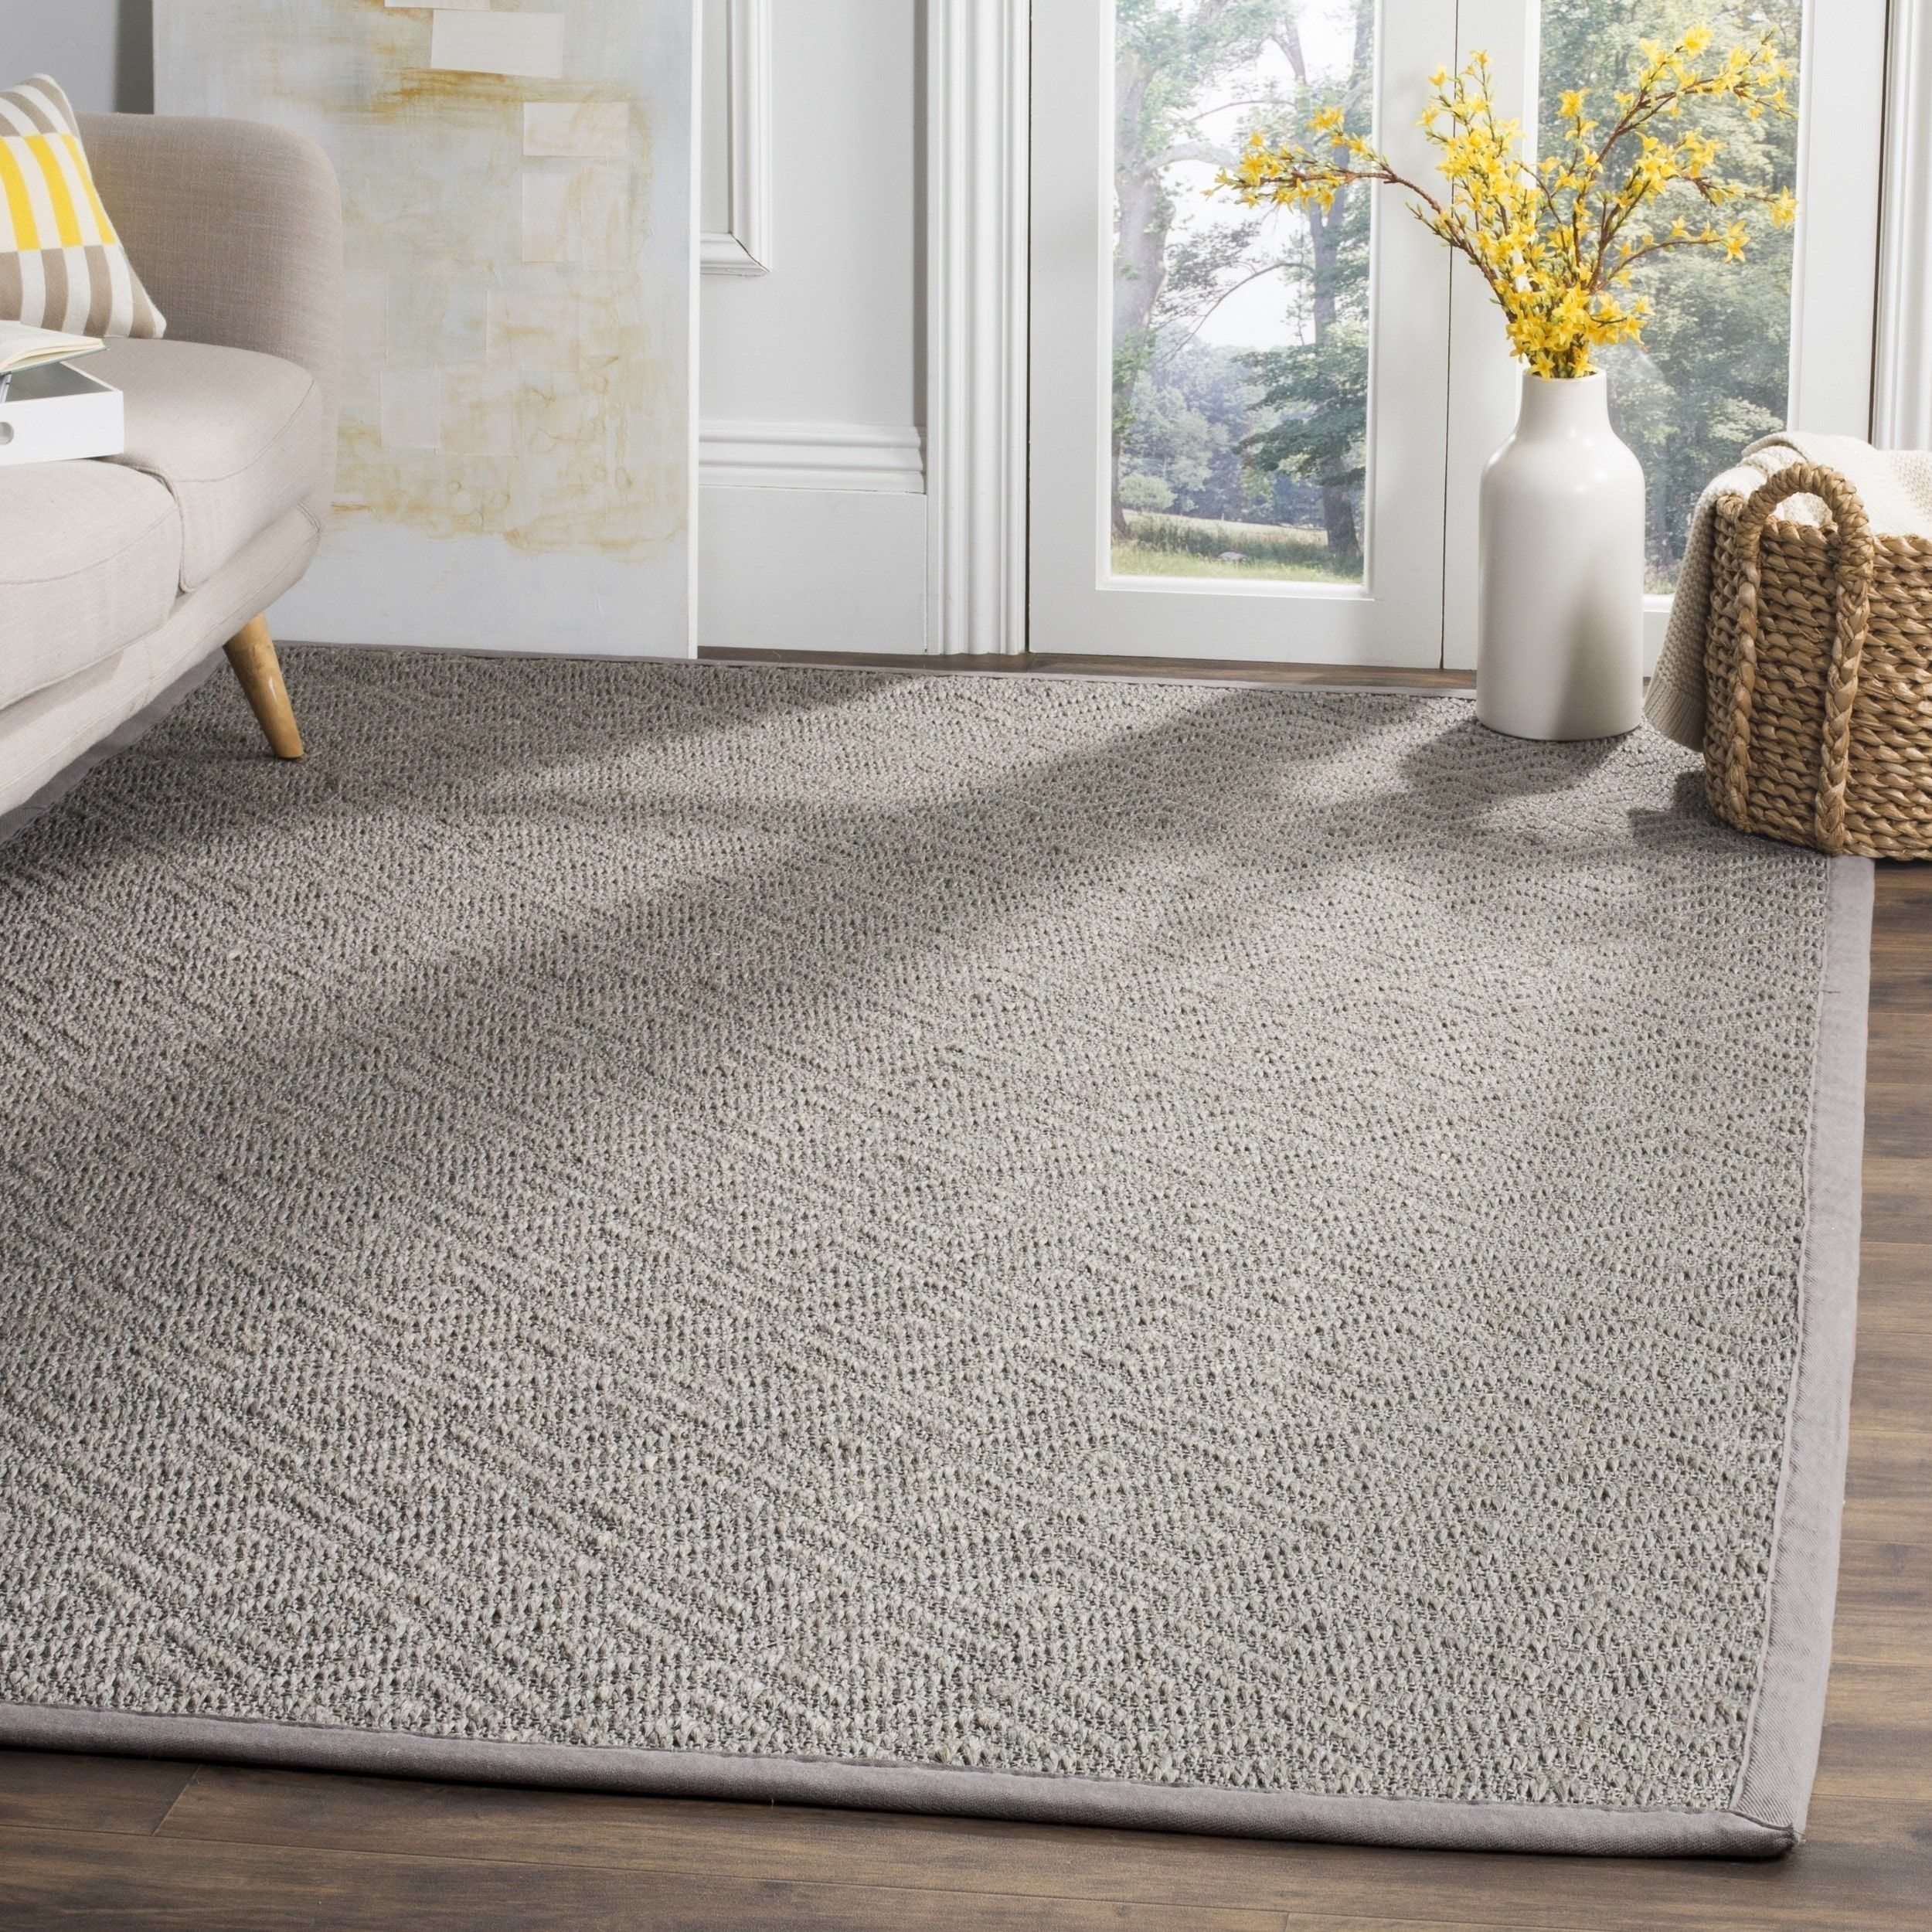 Overstock Com Online Shopping Bedding Furniture Electronics Jewelry Clothing More Geometric Area Rug Area Rugs Rugs